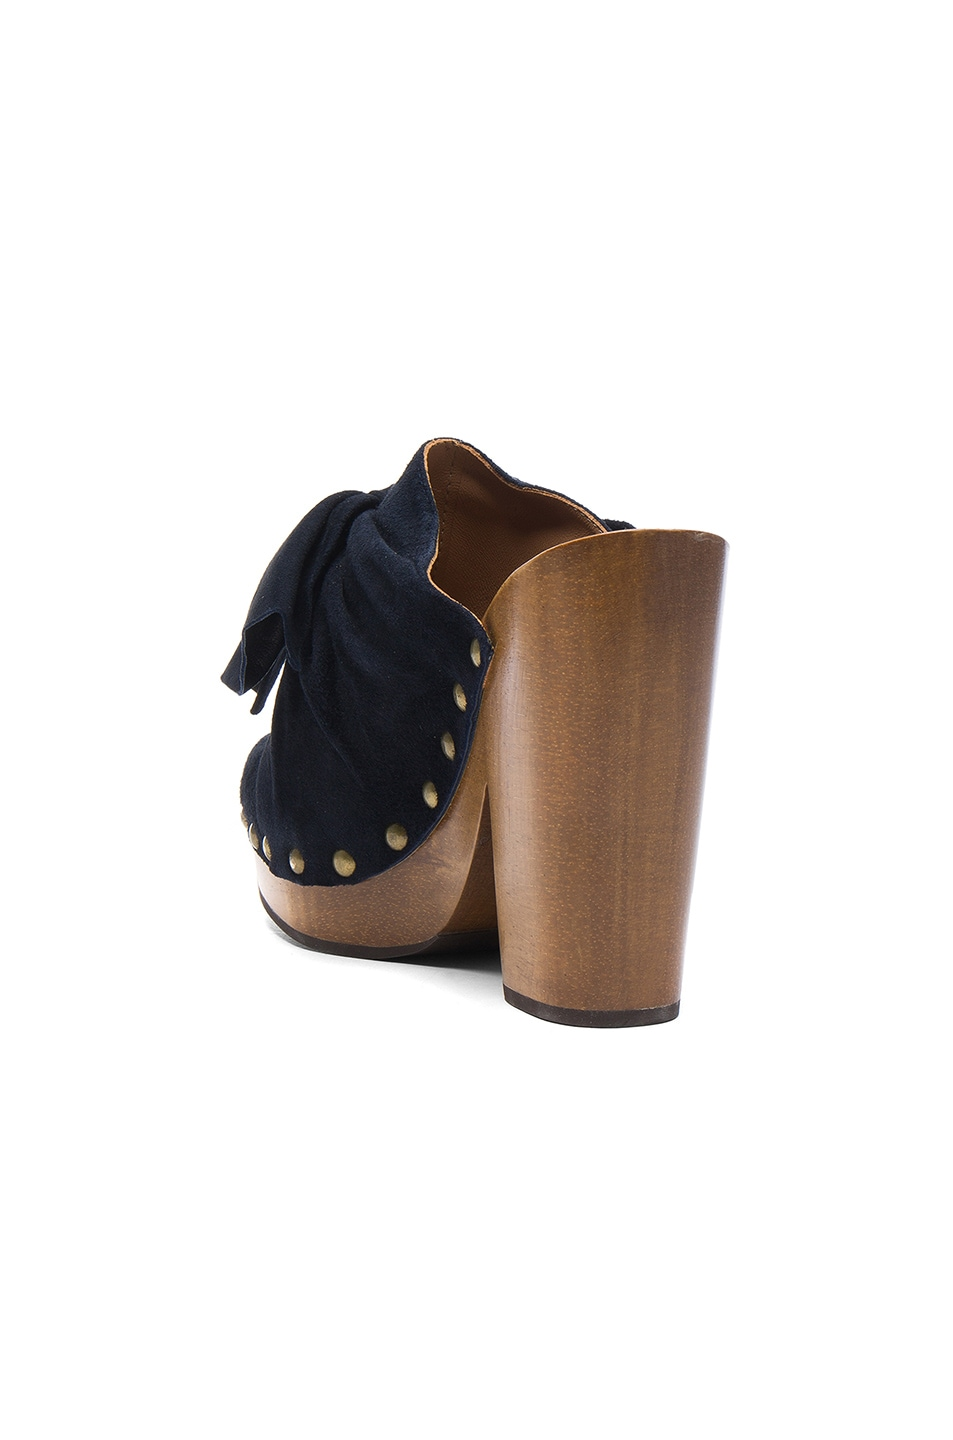 Image 3 of Ulla Johnson Suede Stevie Clogs in Midnight Suede